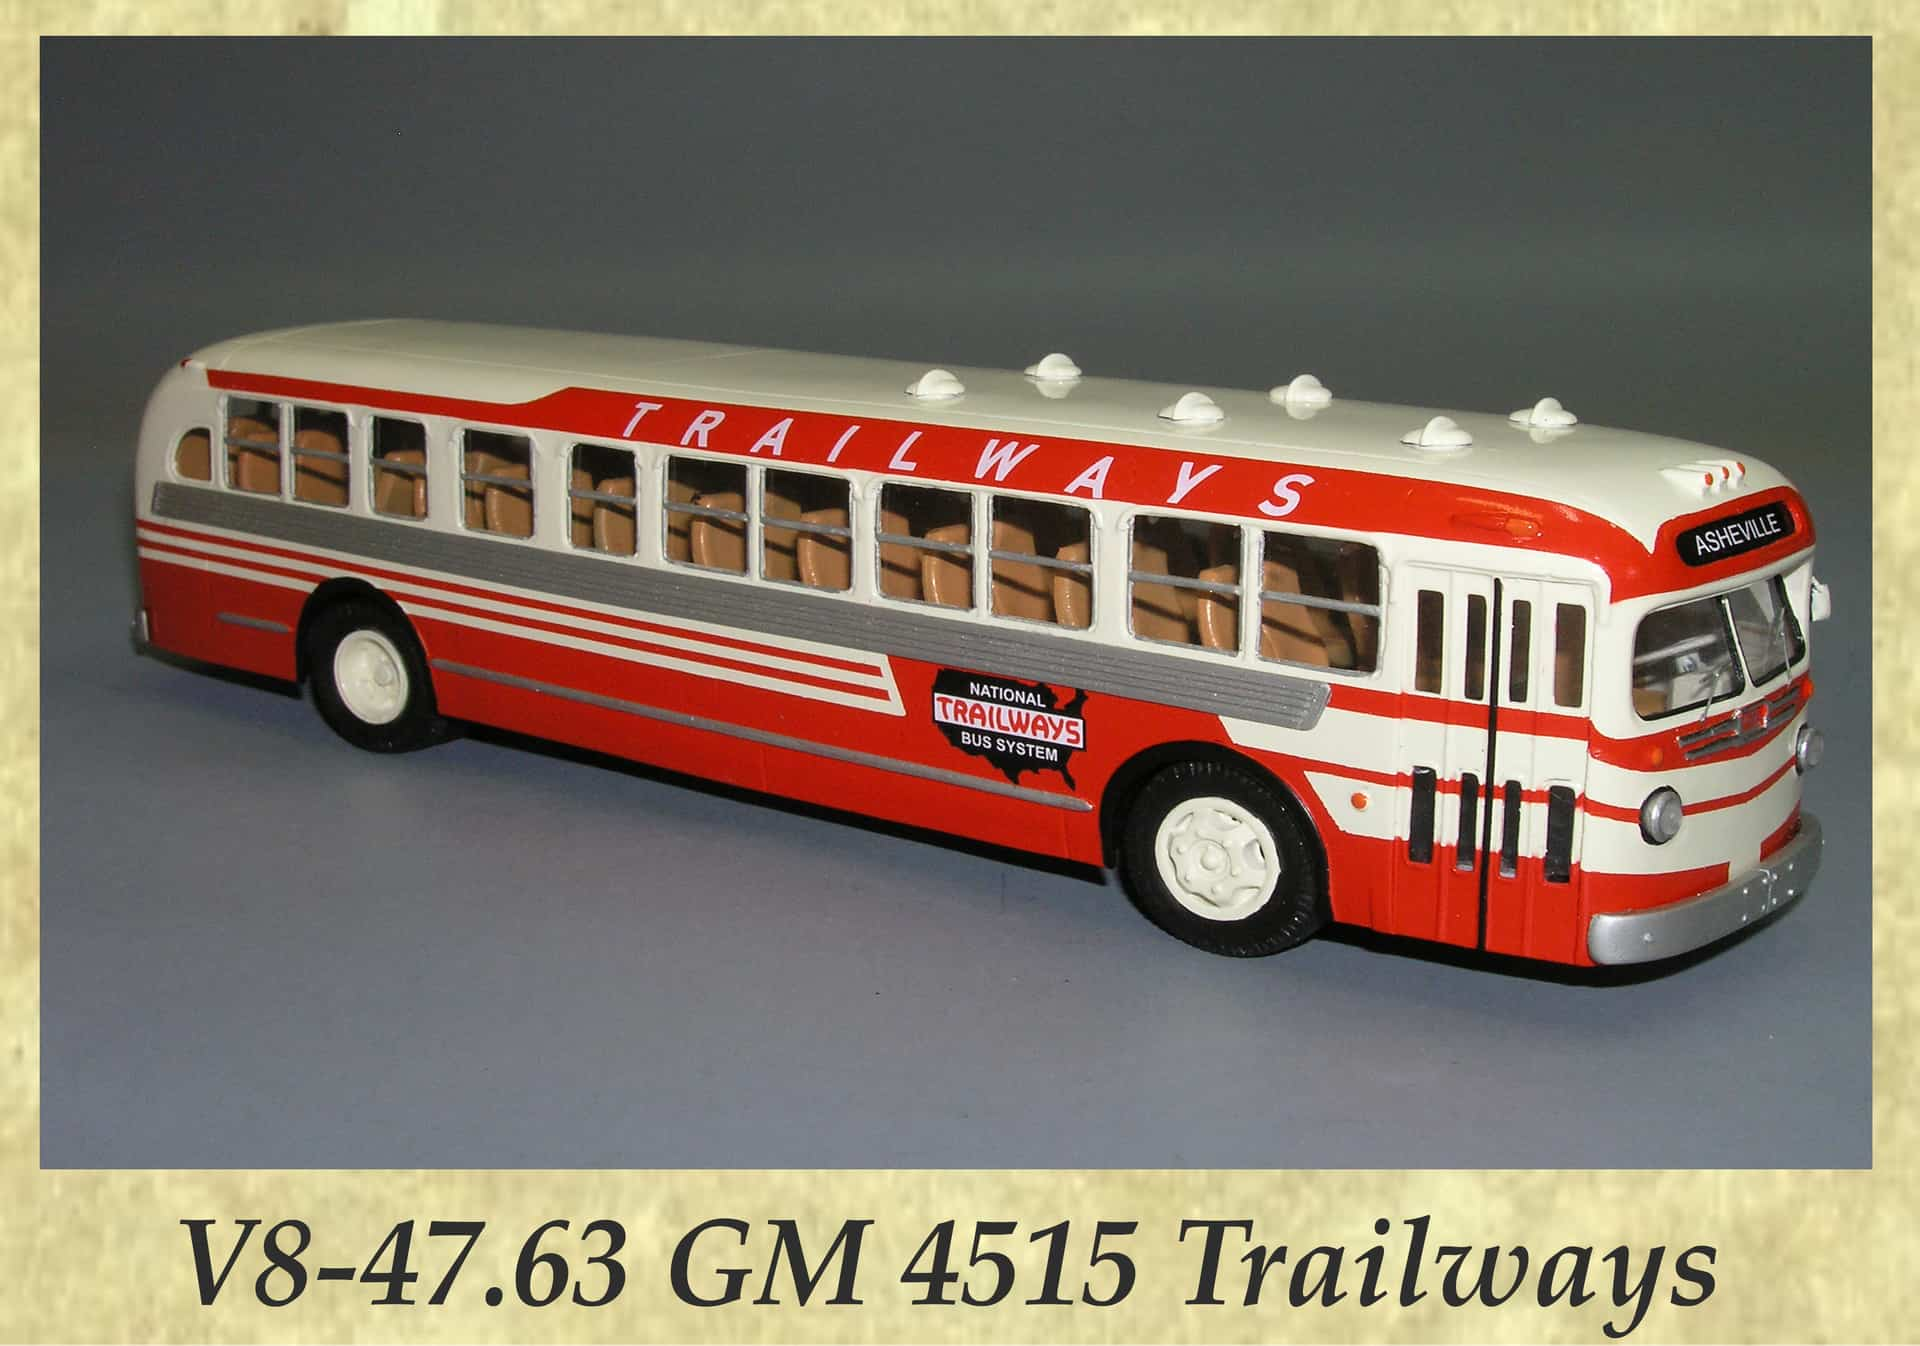 V8-47.63 GM 4515 Trailways-2